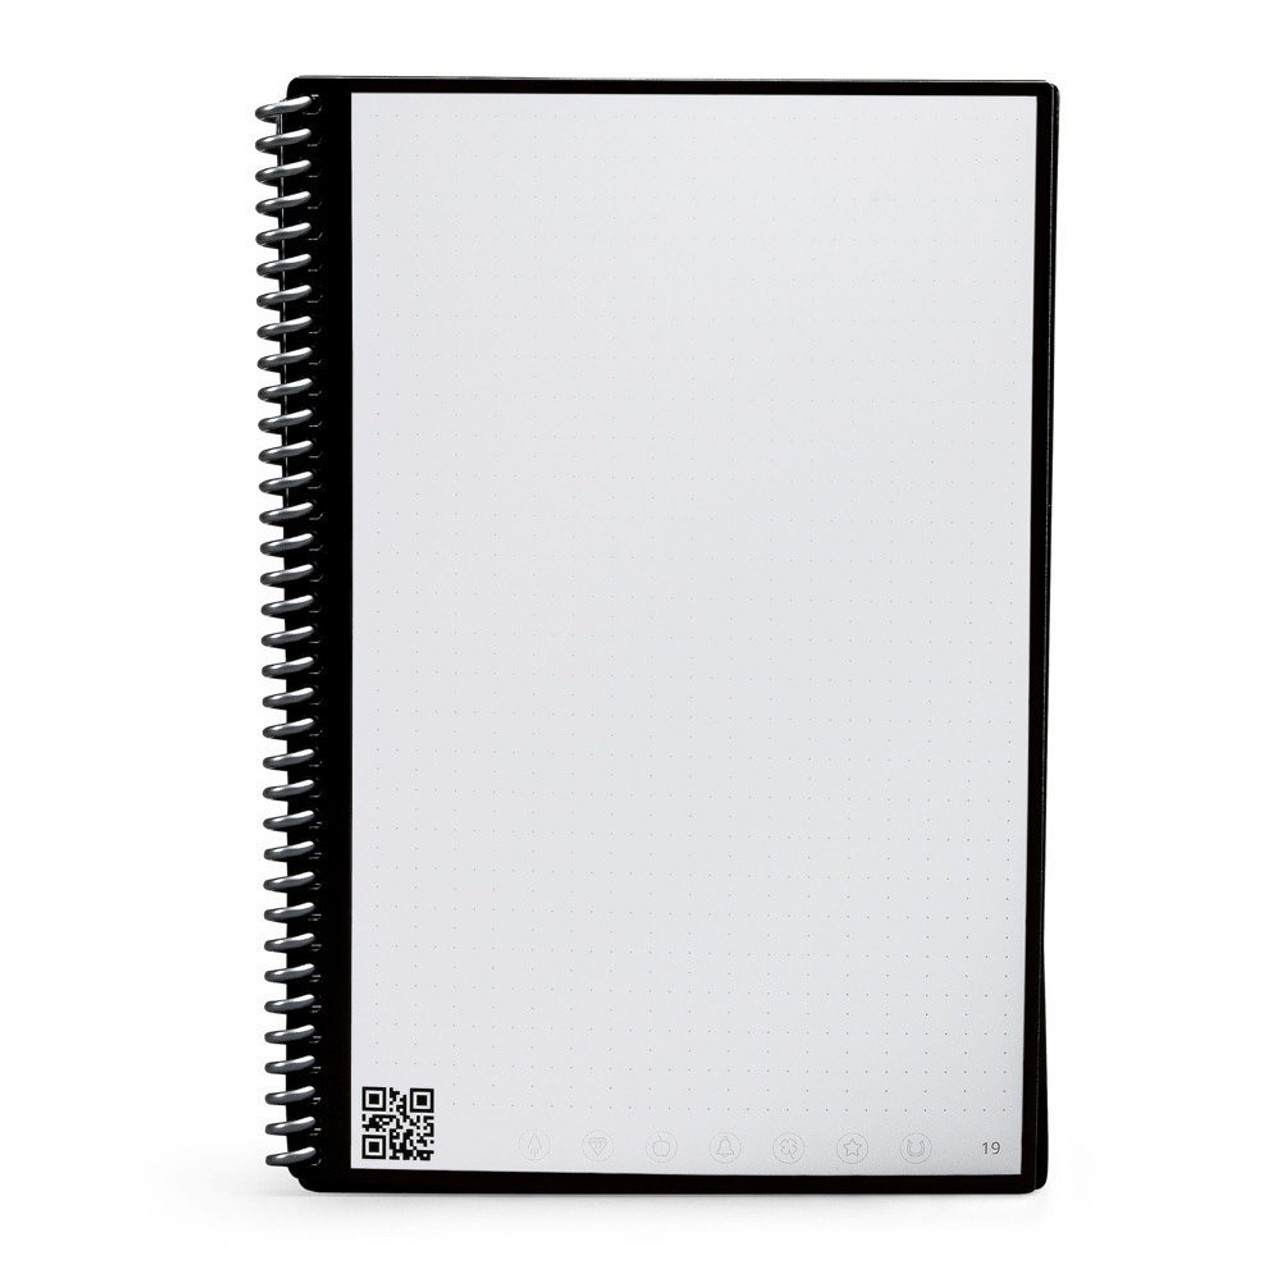 Rocketbook EverLast Reusable Wirebound Notebook- Executive size - Smart Erasable,  with PenStation